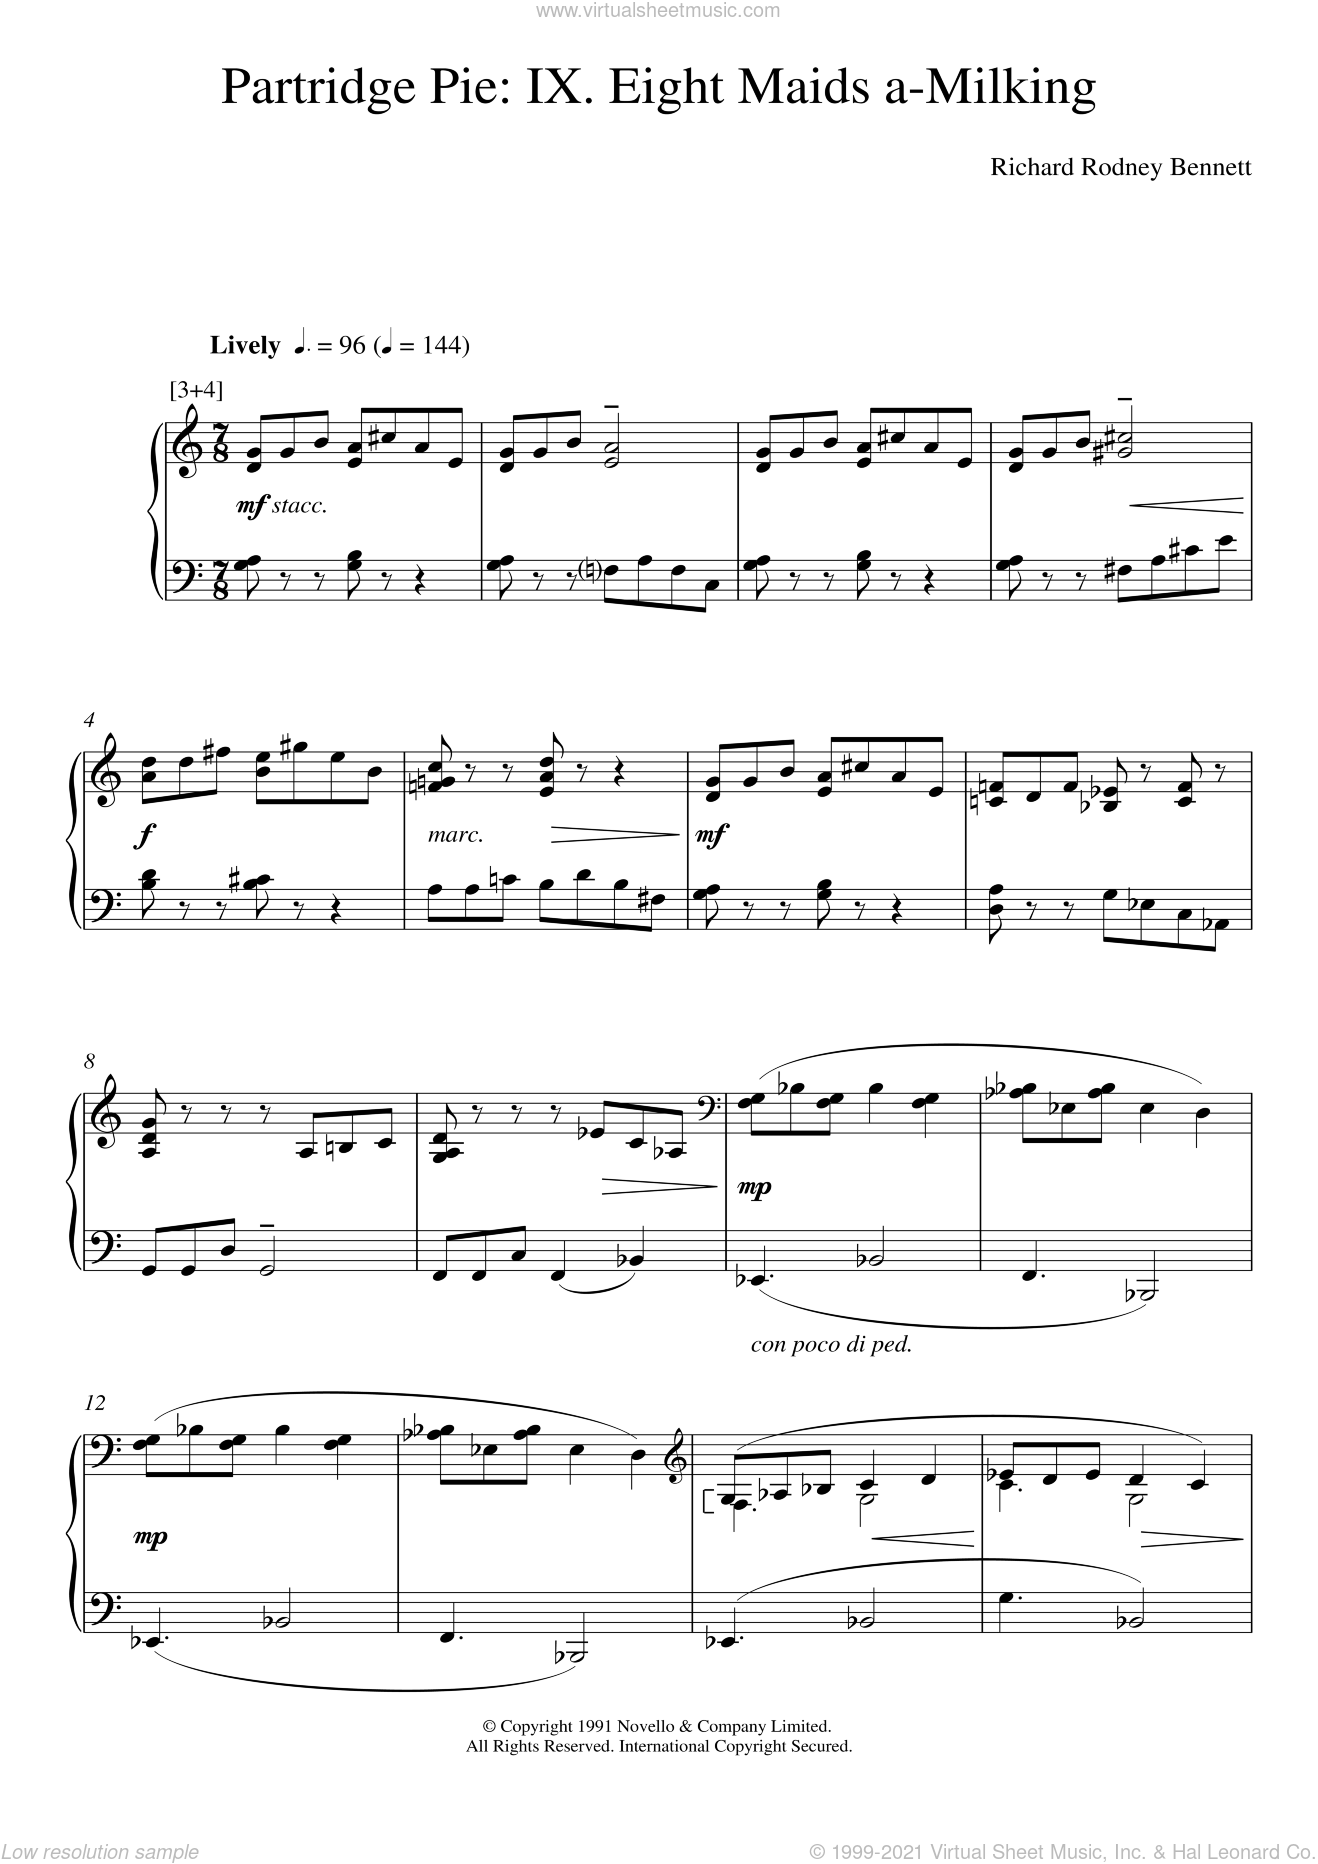 Eight Maids A-Milking (from Partridge Pie) sheet music for piano solo by Richard Bennett, classical score, intermediate skill level